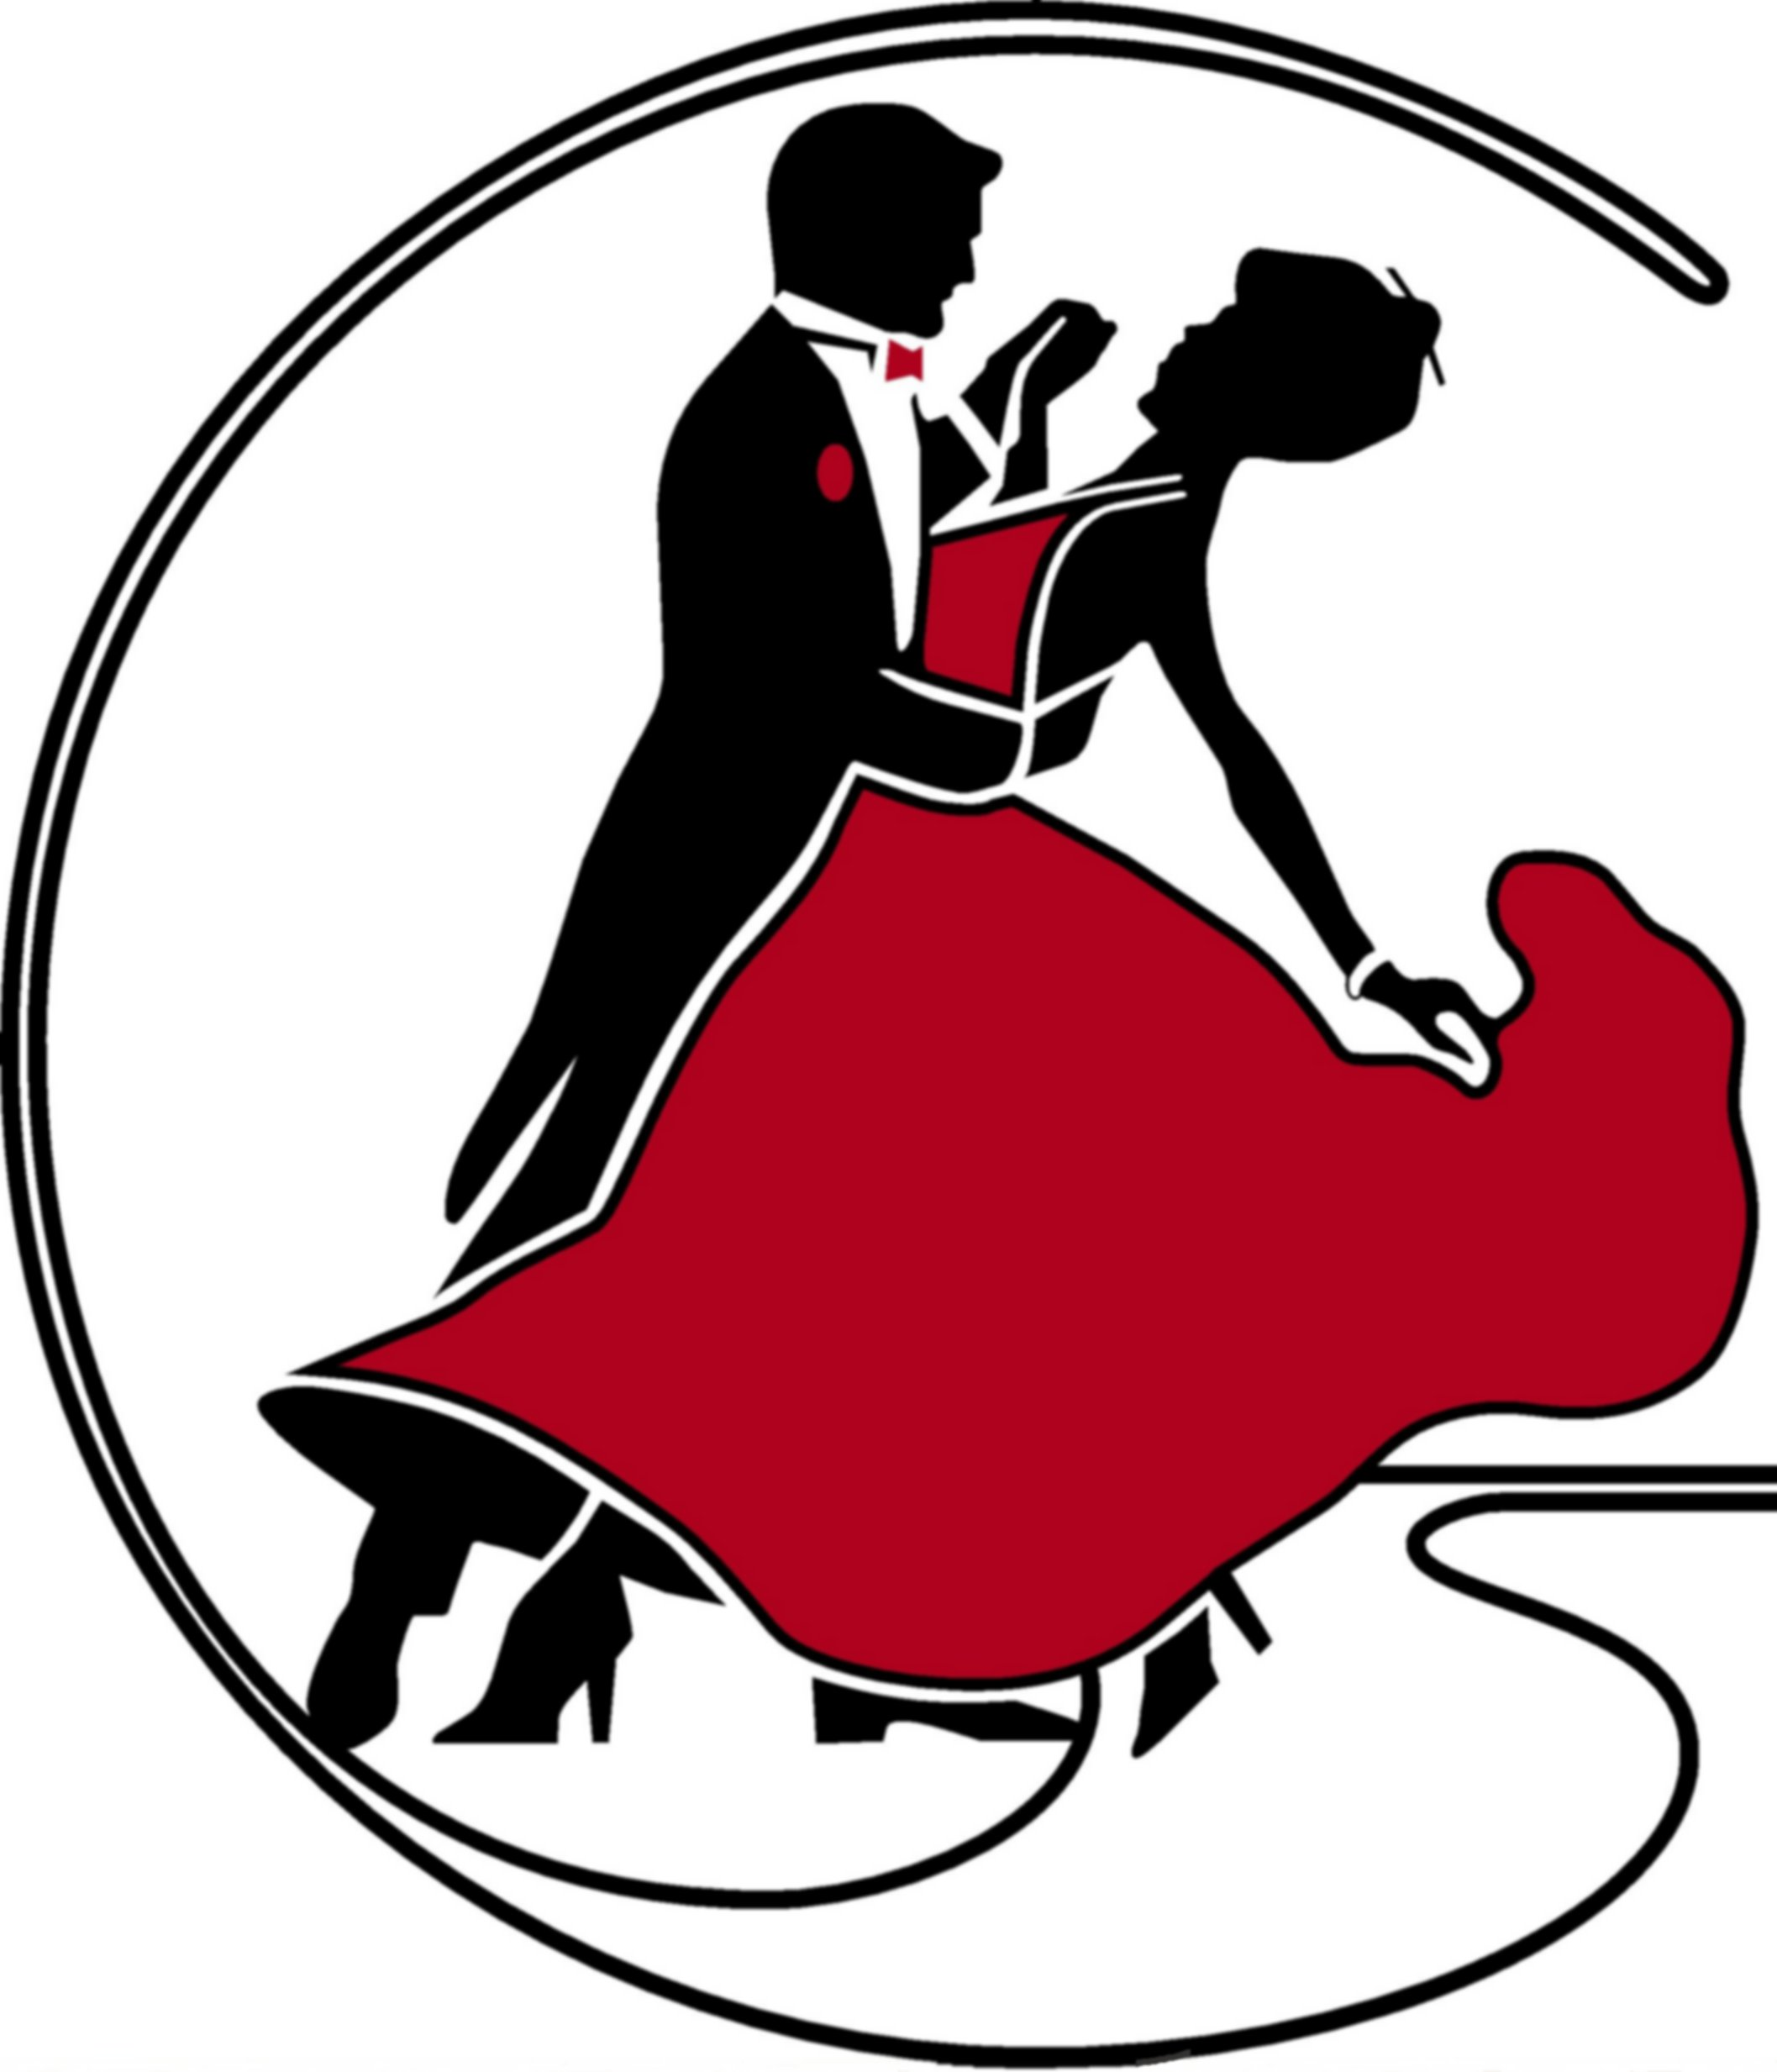 Ballroom Dance Logo Drawing Free Image